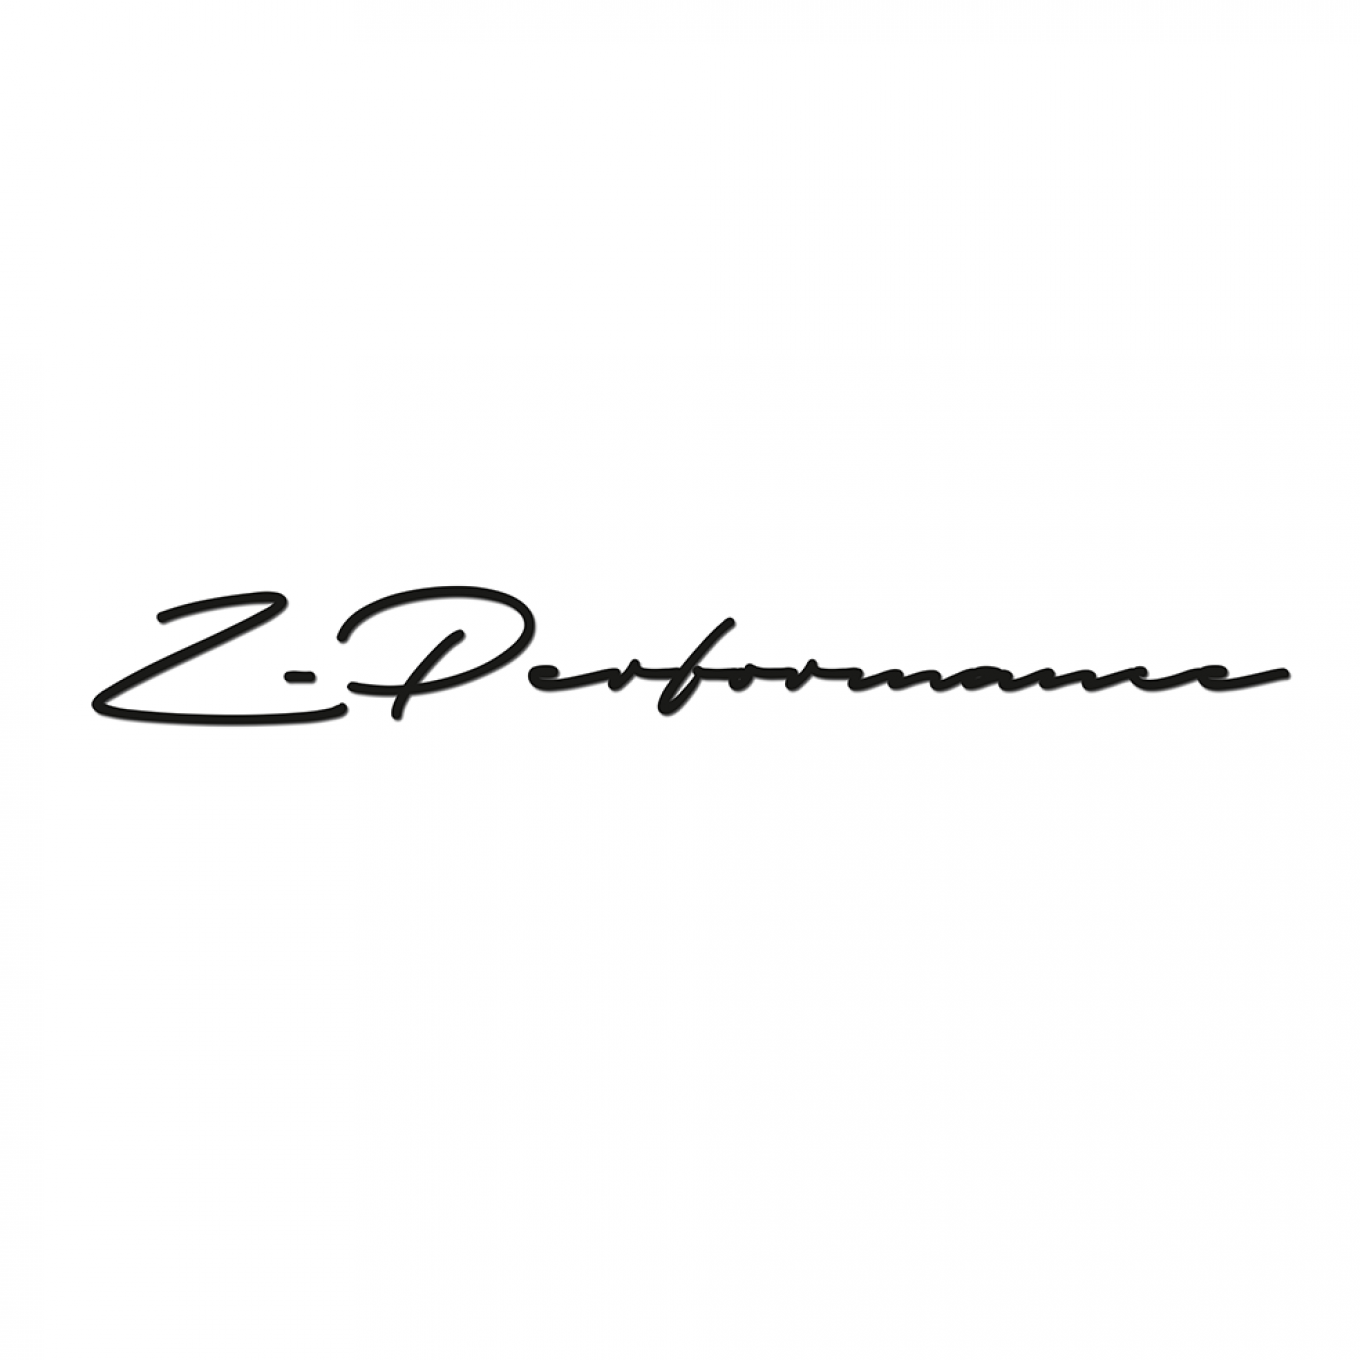 Z-Performance Signature Sticker| 25 cm | White